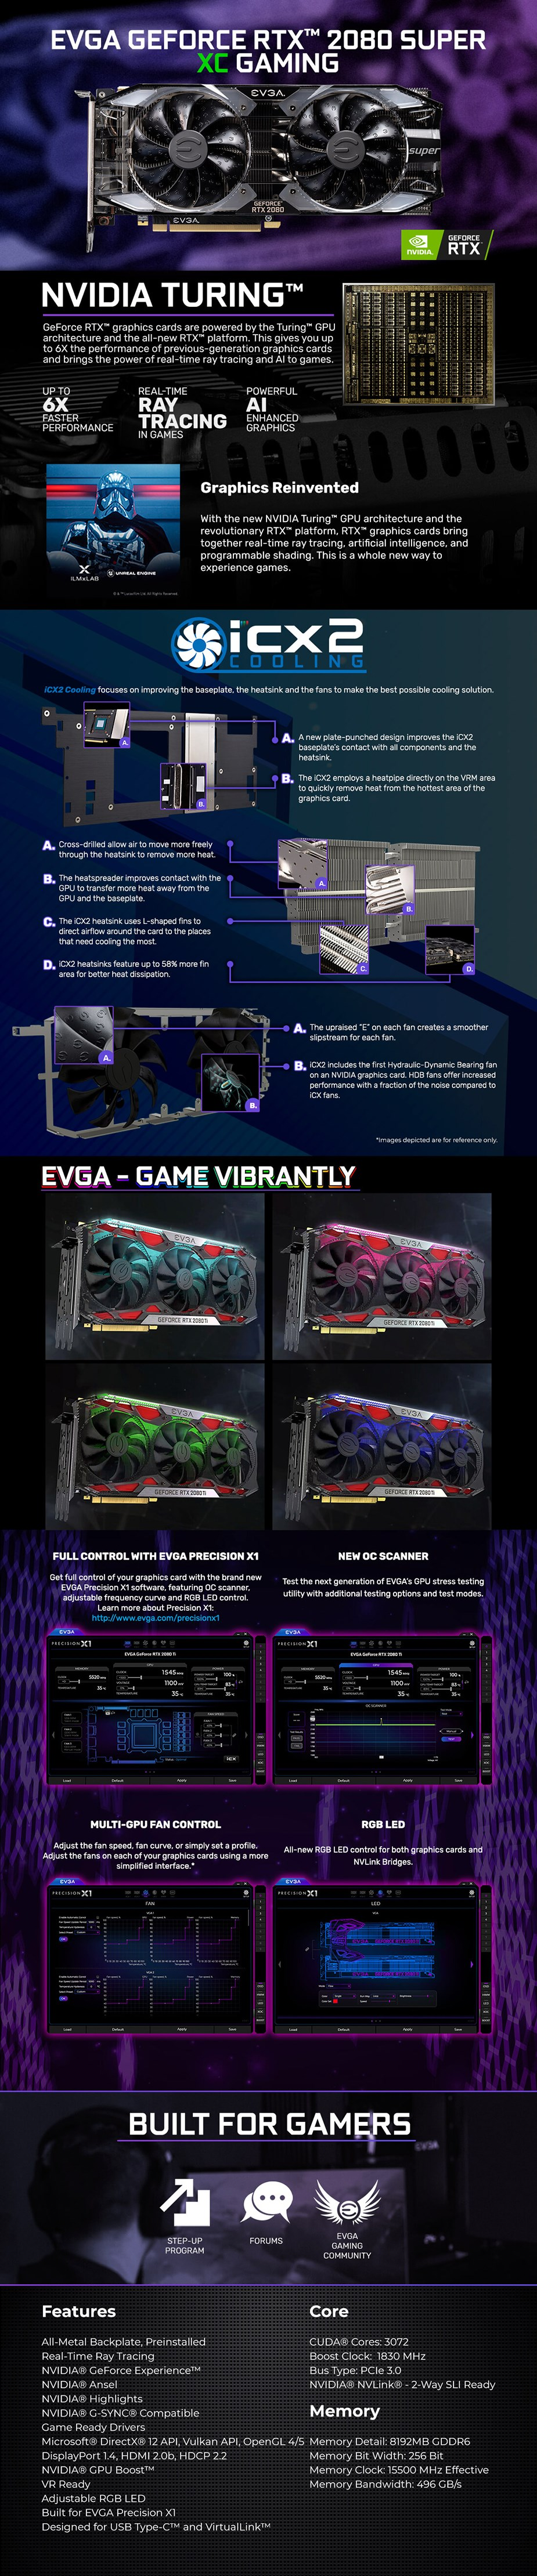 EVGA GeForce RTX 2080 SUPER XC GAMING 8GB Video Card - Overview 1